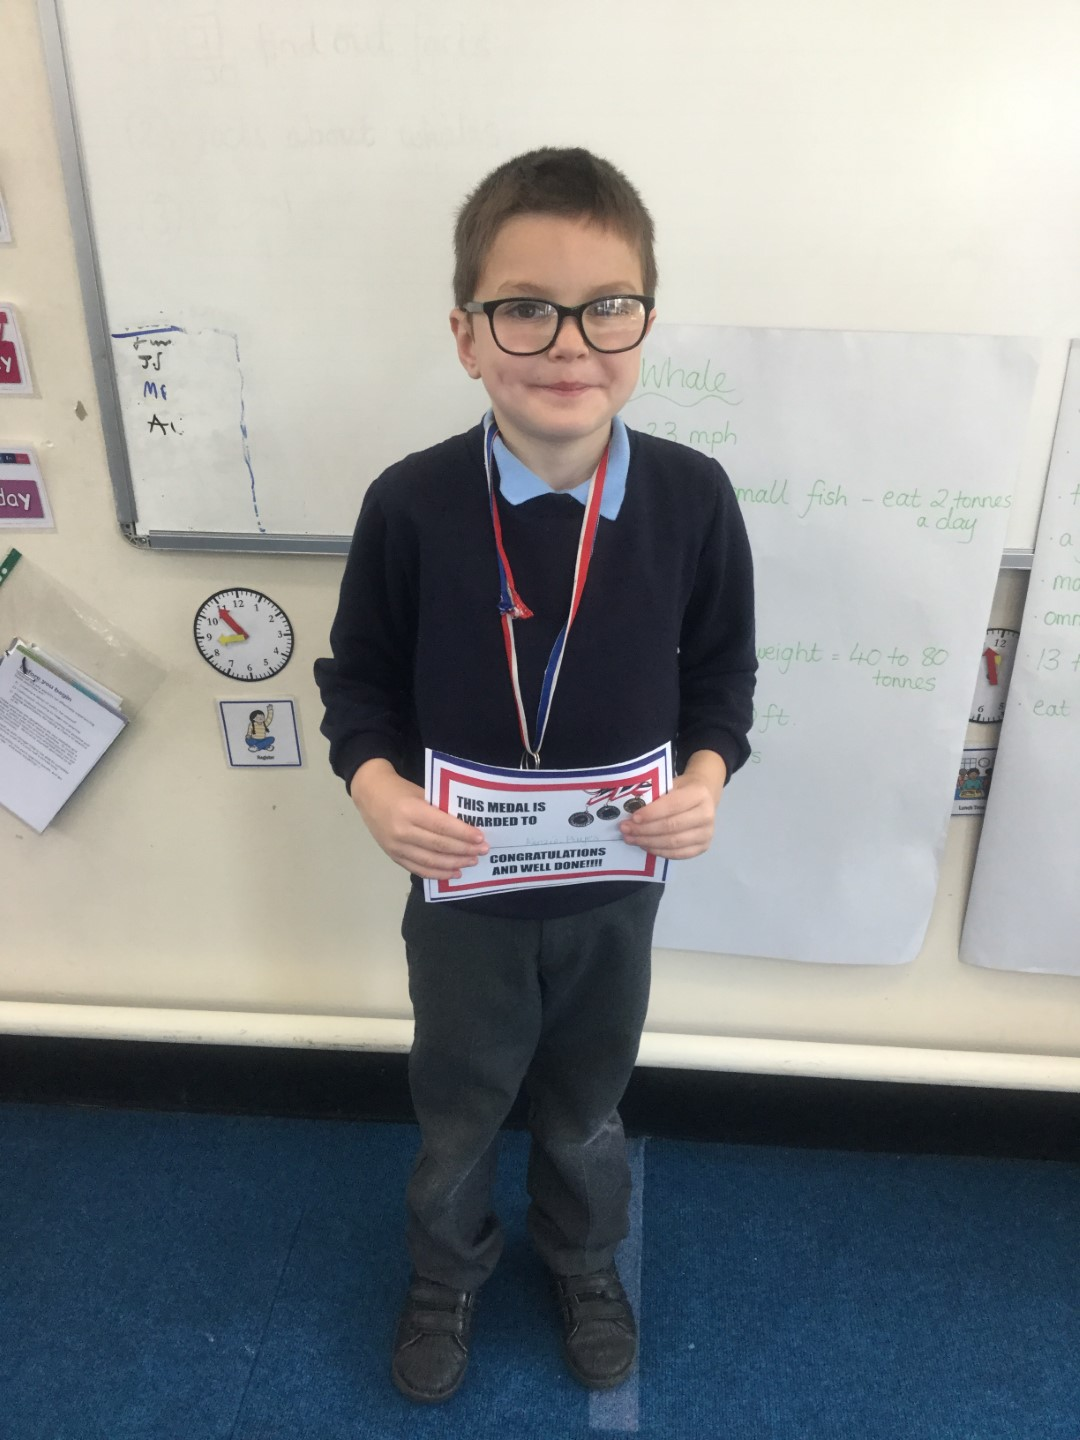 Our 'Champion of the Week' is Kenzie for outstanding effort and hard work over the course of the week. Well done Kenzie! -